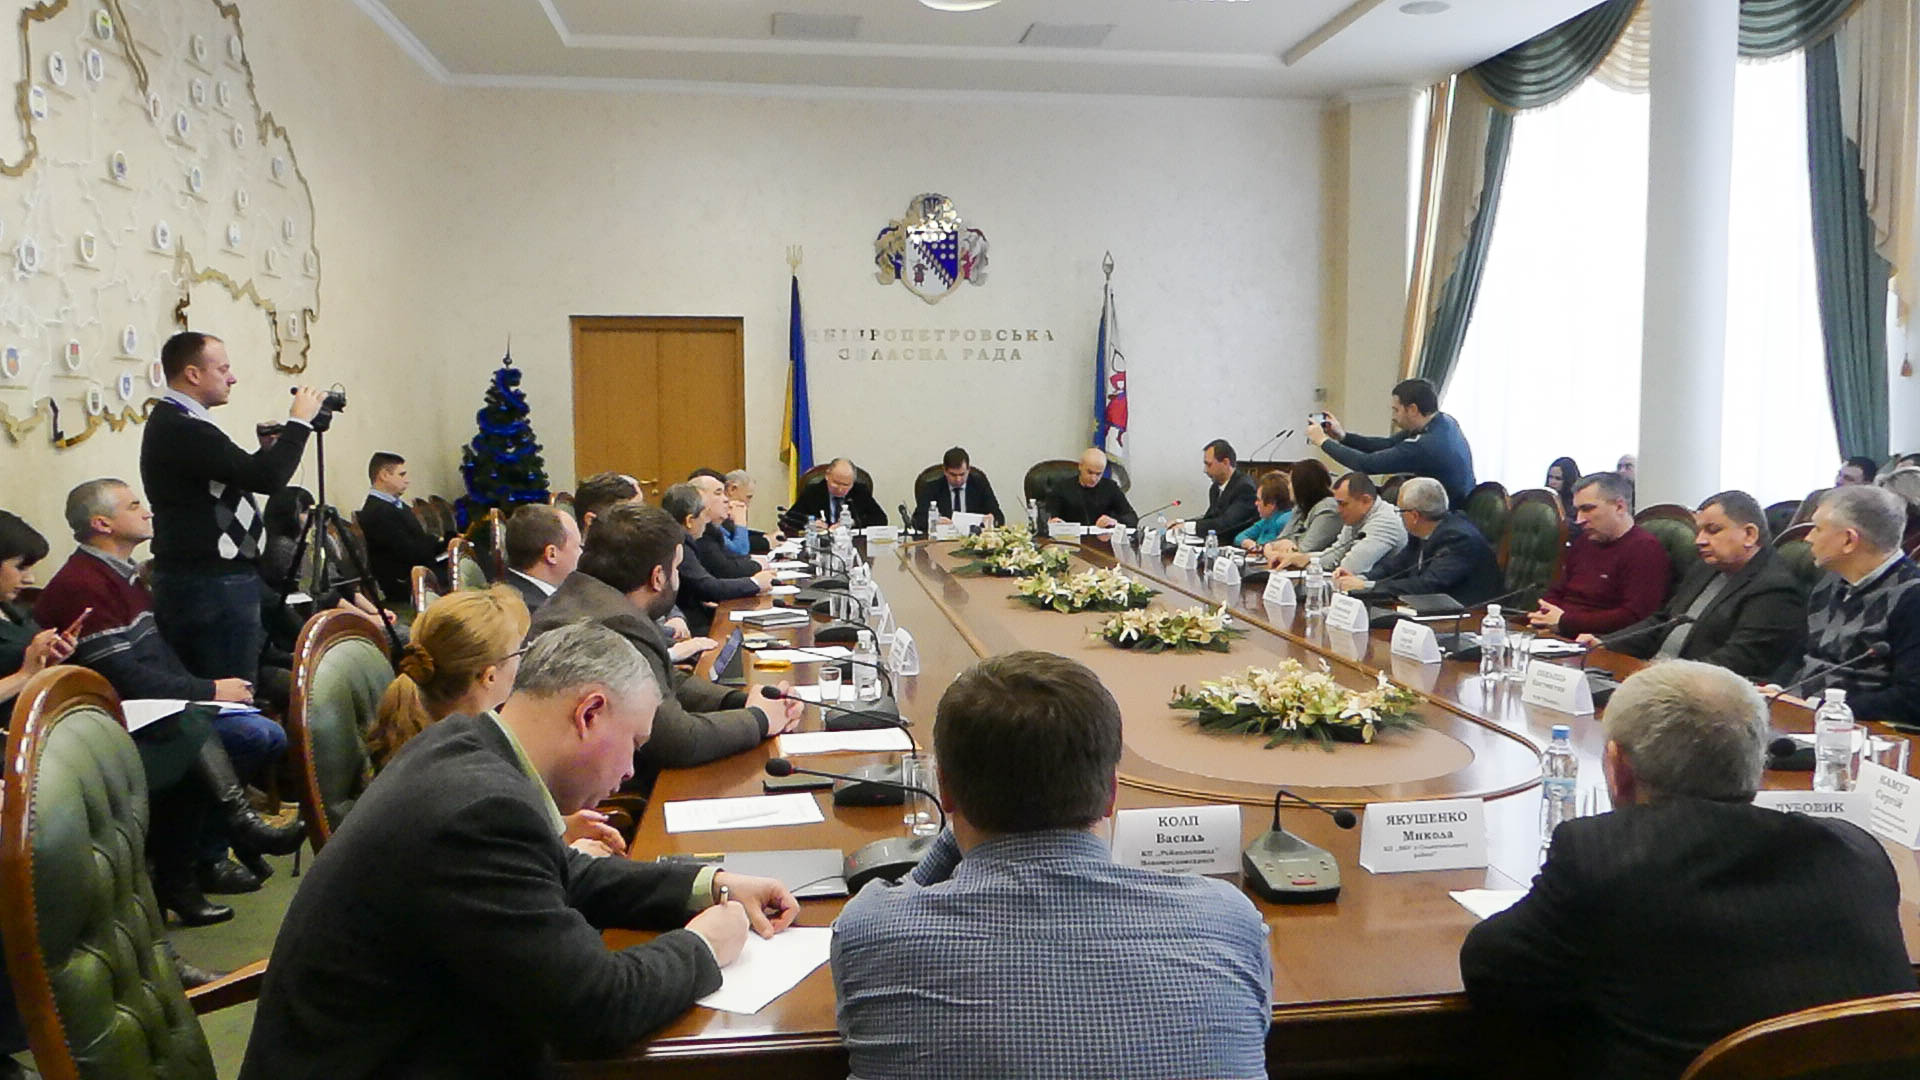 INTENGIN participated in the roundtable discussion on Innovation Practices in Energy Efficiency and Automation for water services companies of Dnipropetrovsk Region.